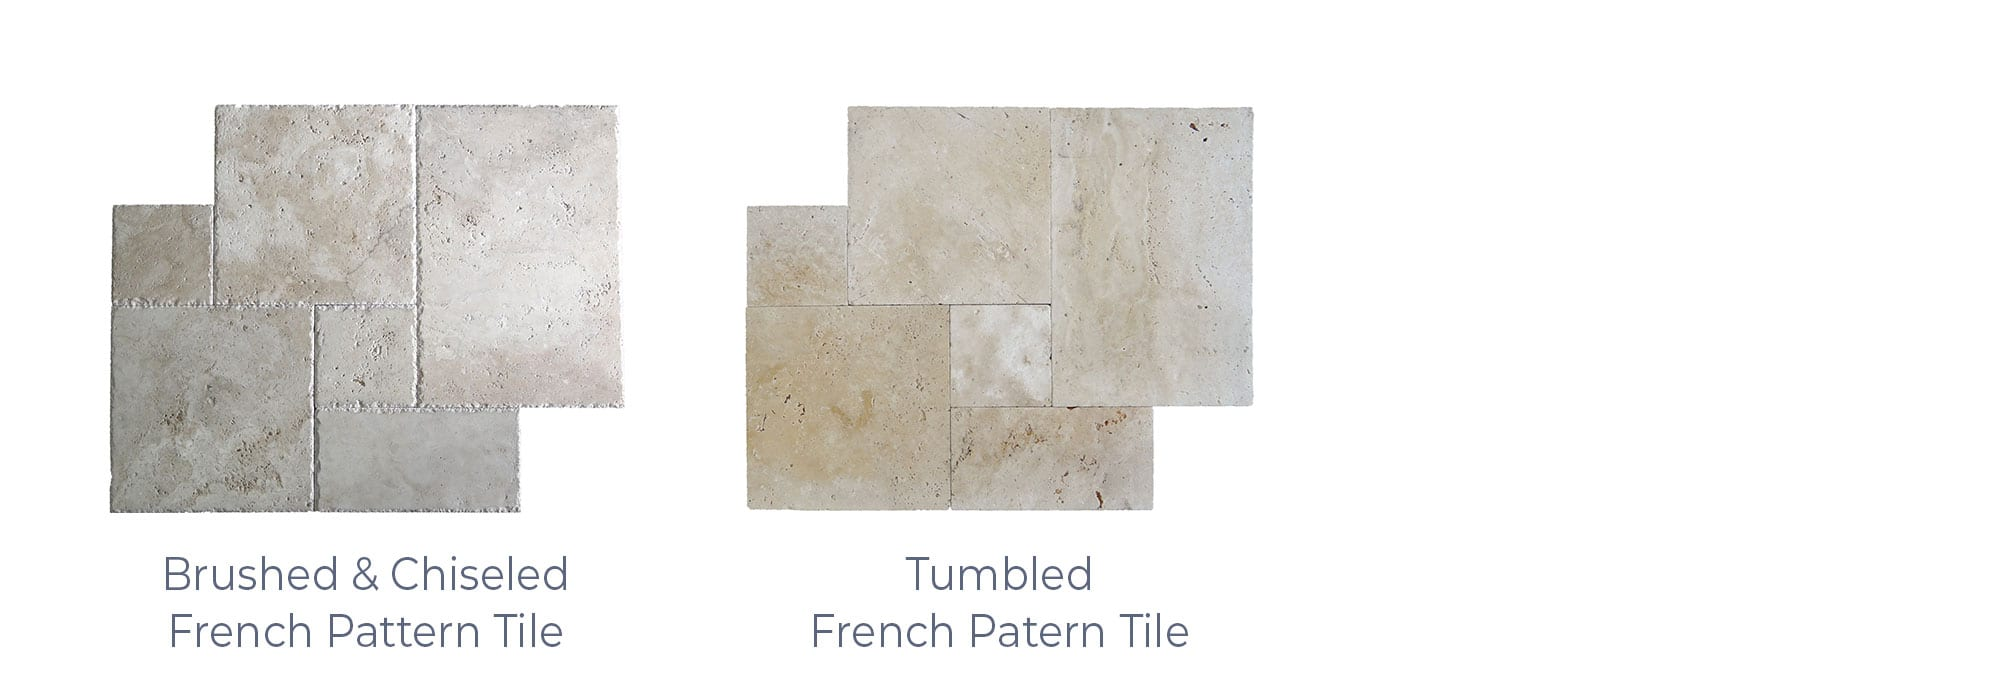 Stoneline-Group-Ivory-Marble-Collection-Marble-Tile-French-Pattern-Brushed-Chiseled-Tumbled-Pictures